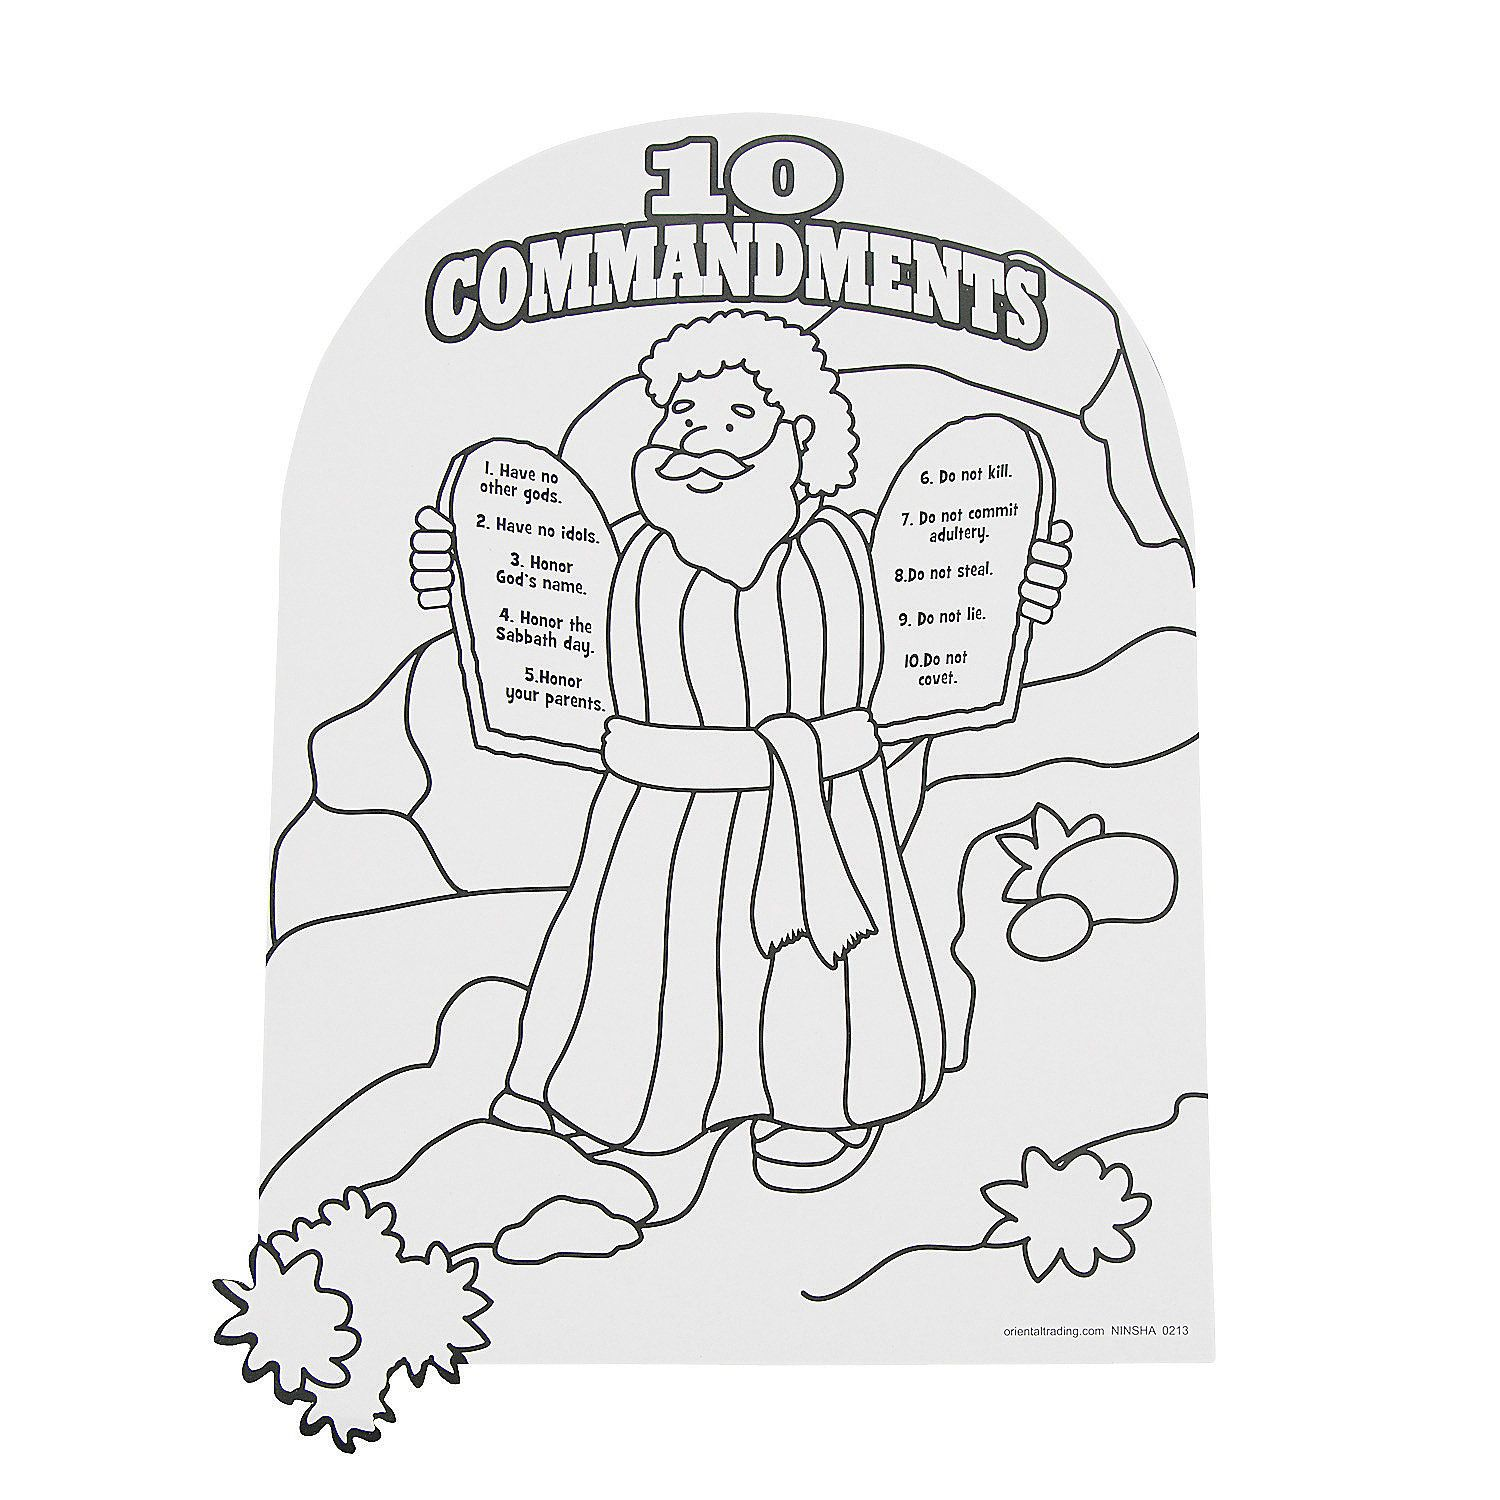 13607057 A01 1500 1500 Coloring Pages Inspirational Christmas